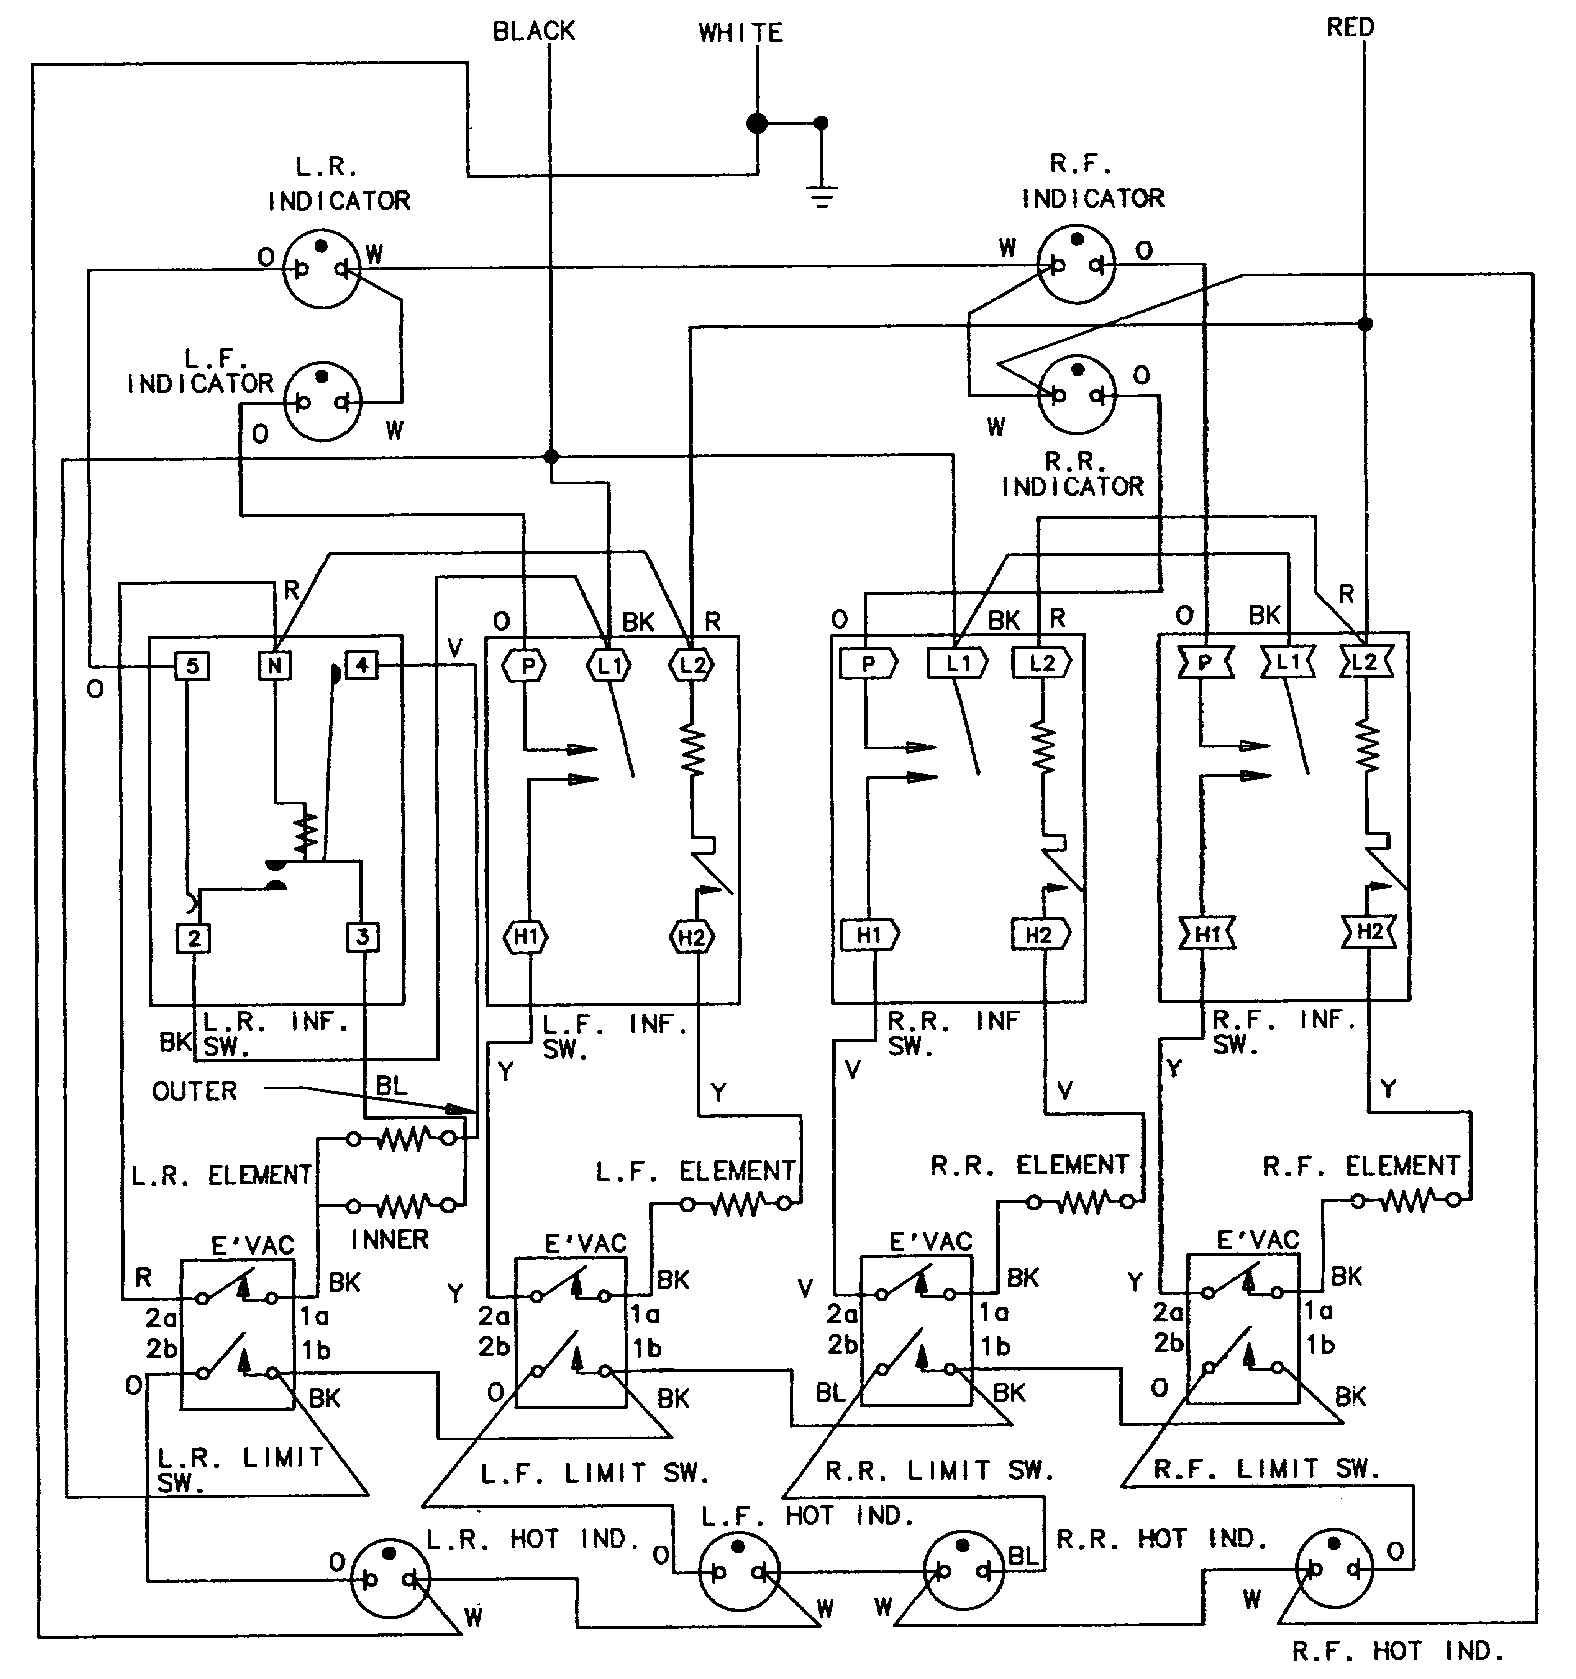 WIRING INFORMATION Diagram & Parts List for Model CCE3401W